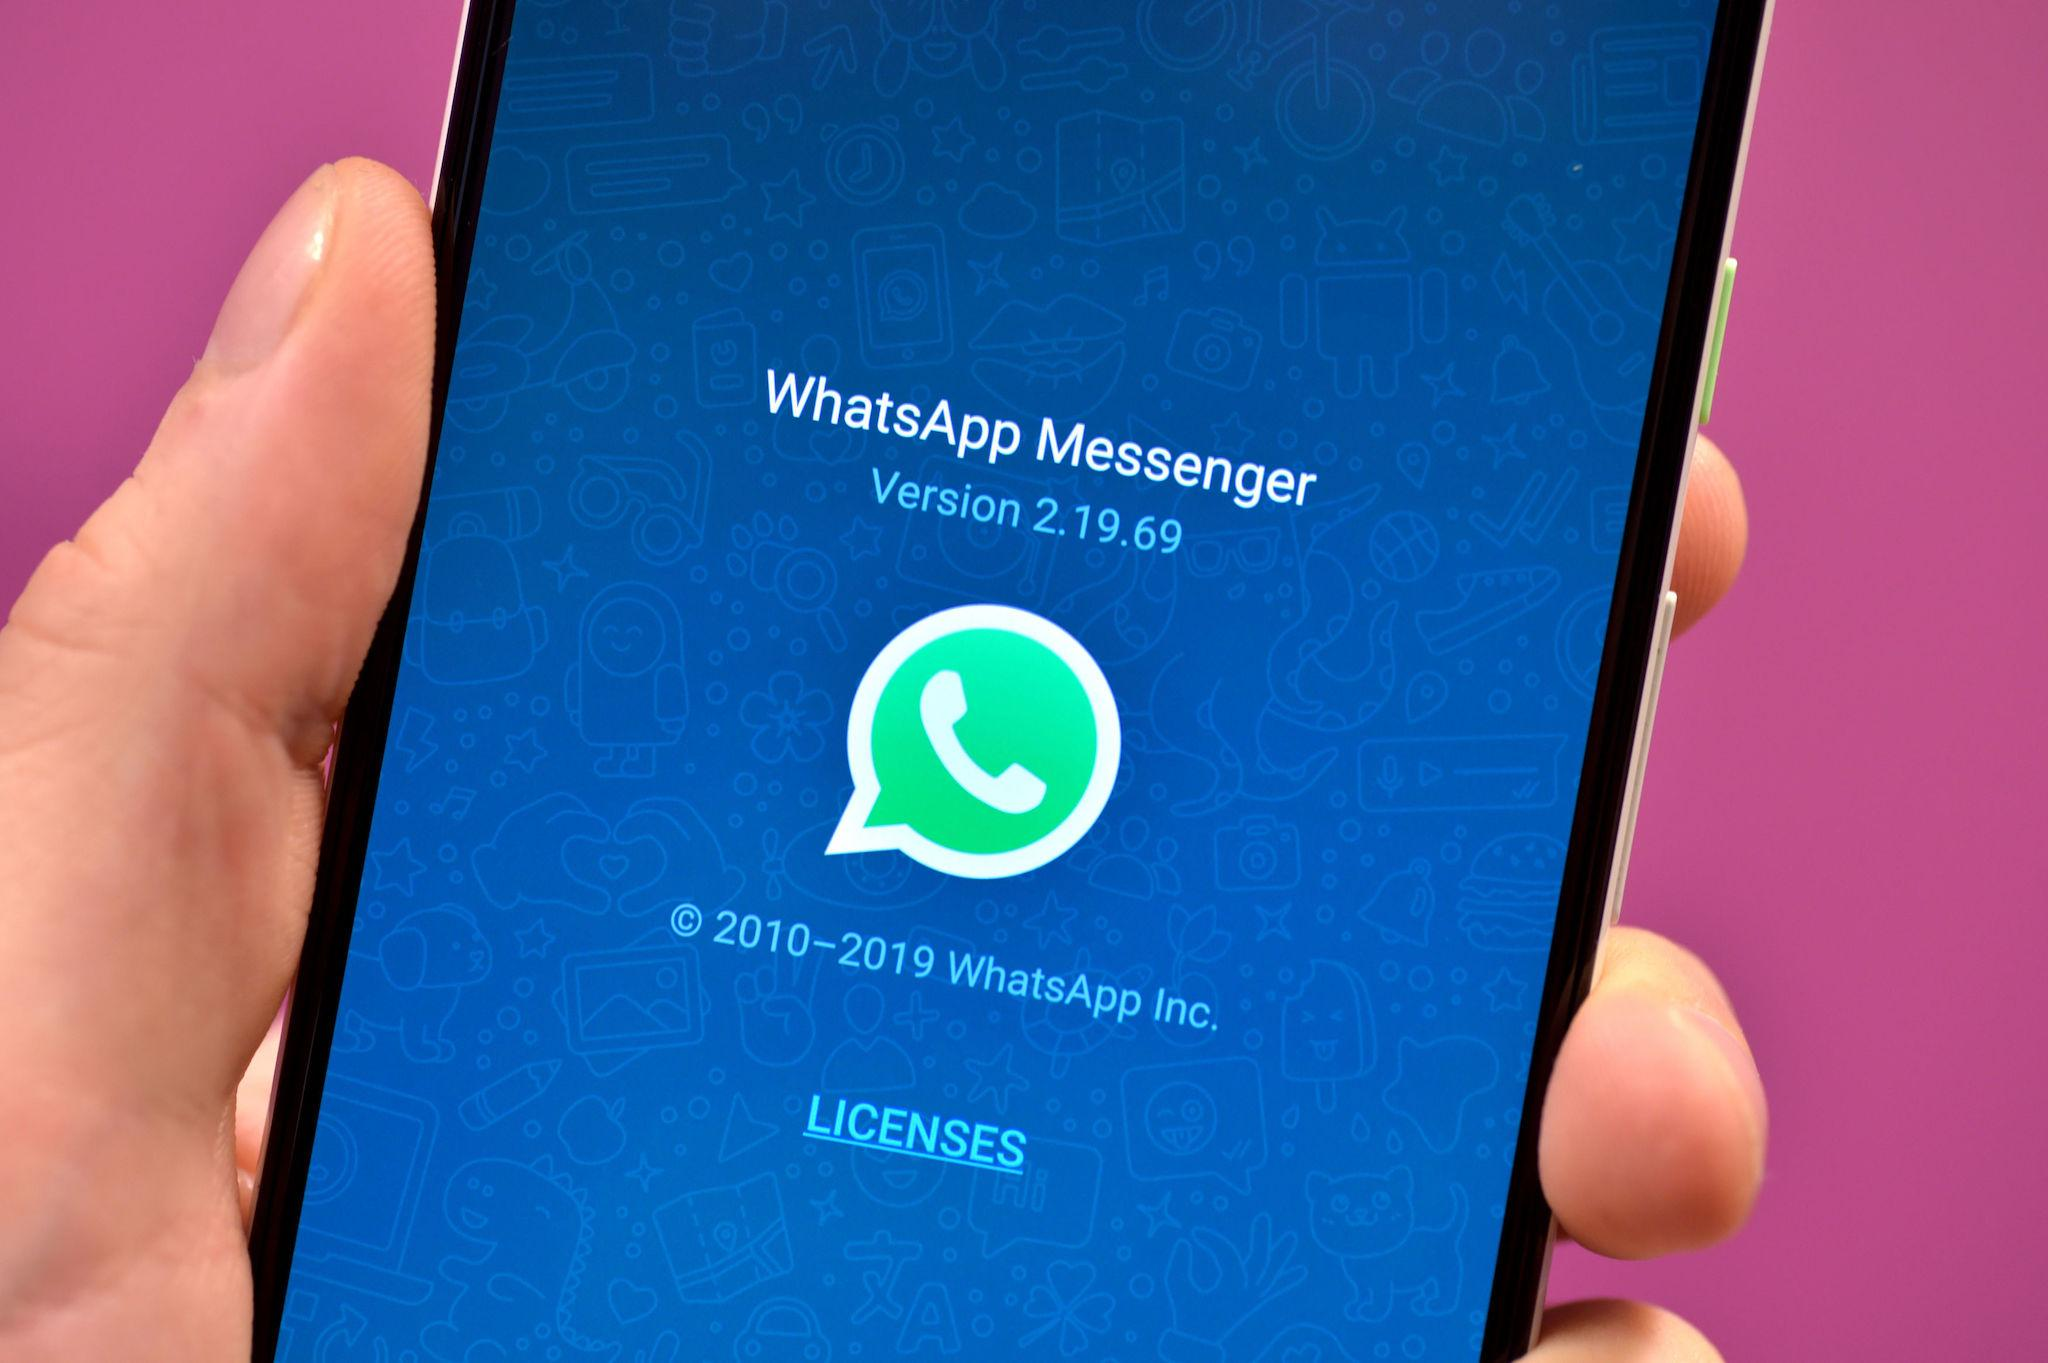 WhatsApp: How do I download update, am I affected by spyware and how